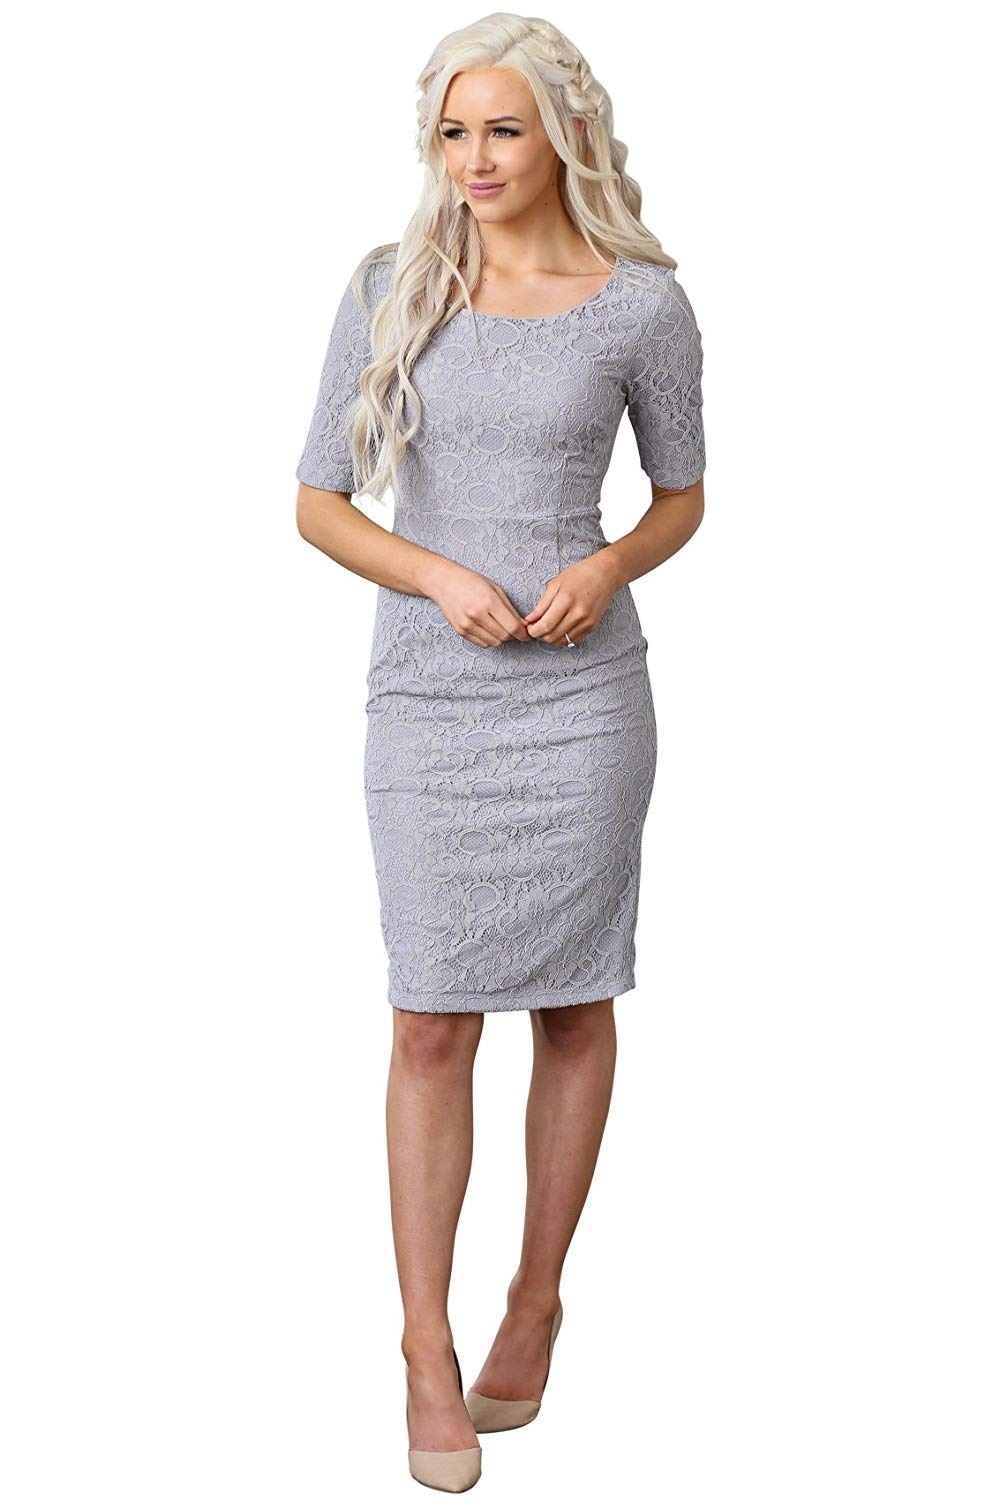 feecff3c19972 Buy Mikarose Annabelle Modest Dress in Gray Lace w/Taupe Lining in ...